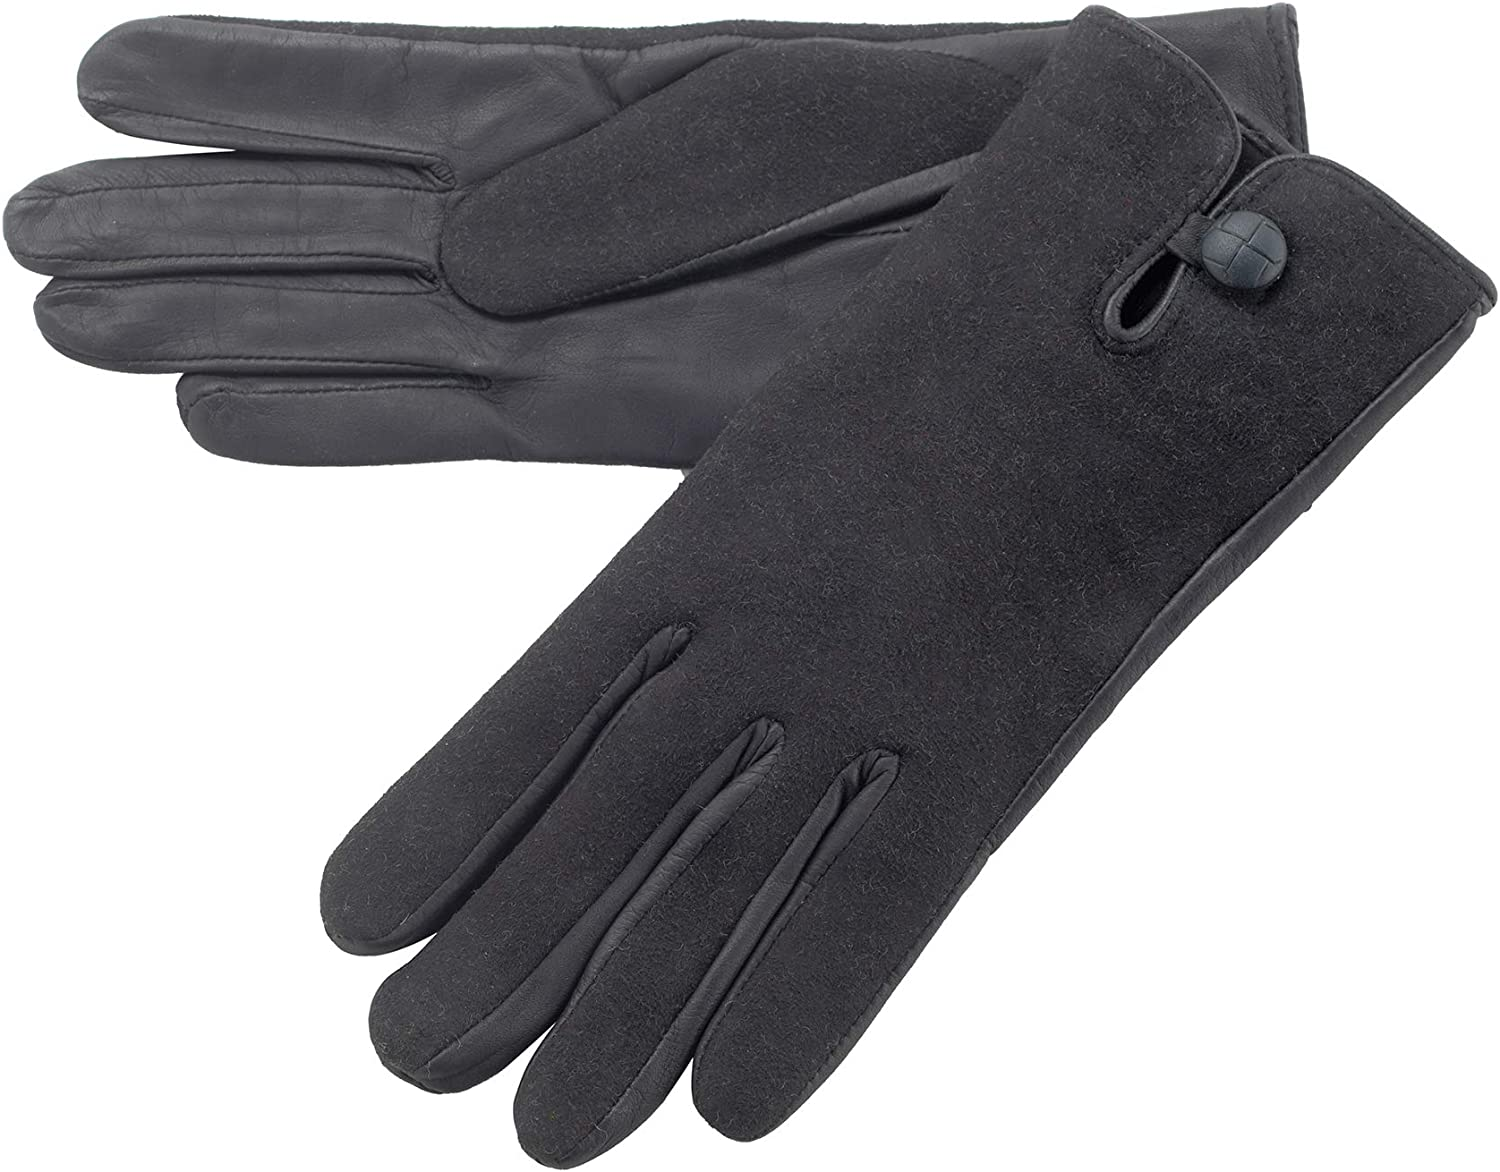 Lambland Ladies Leather Palm Lambskin Back Gloves in Black Size Small